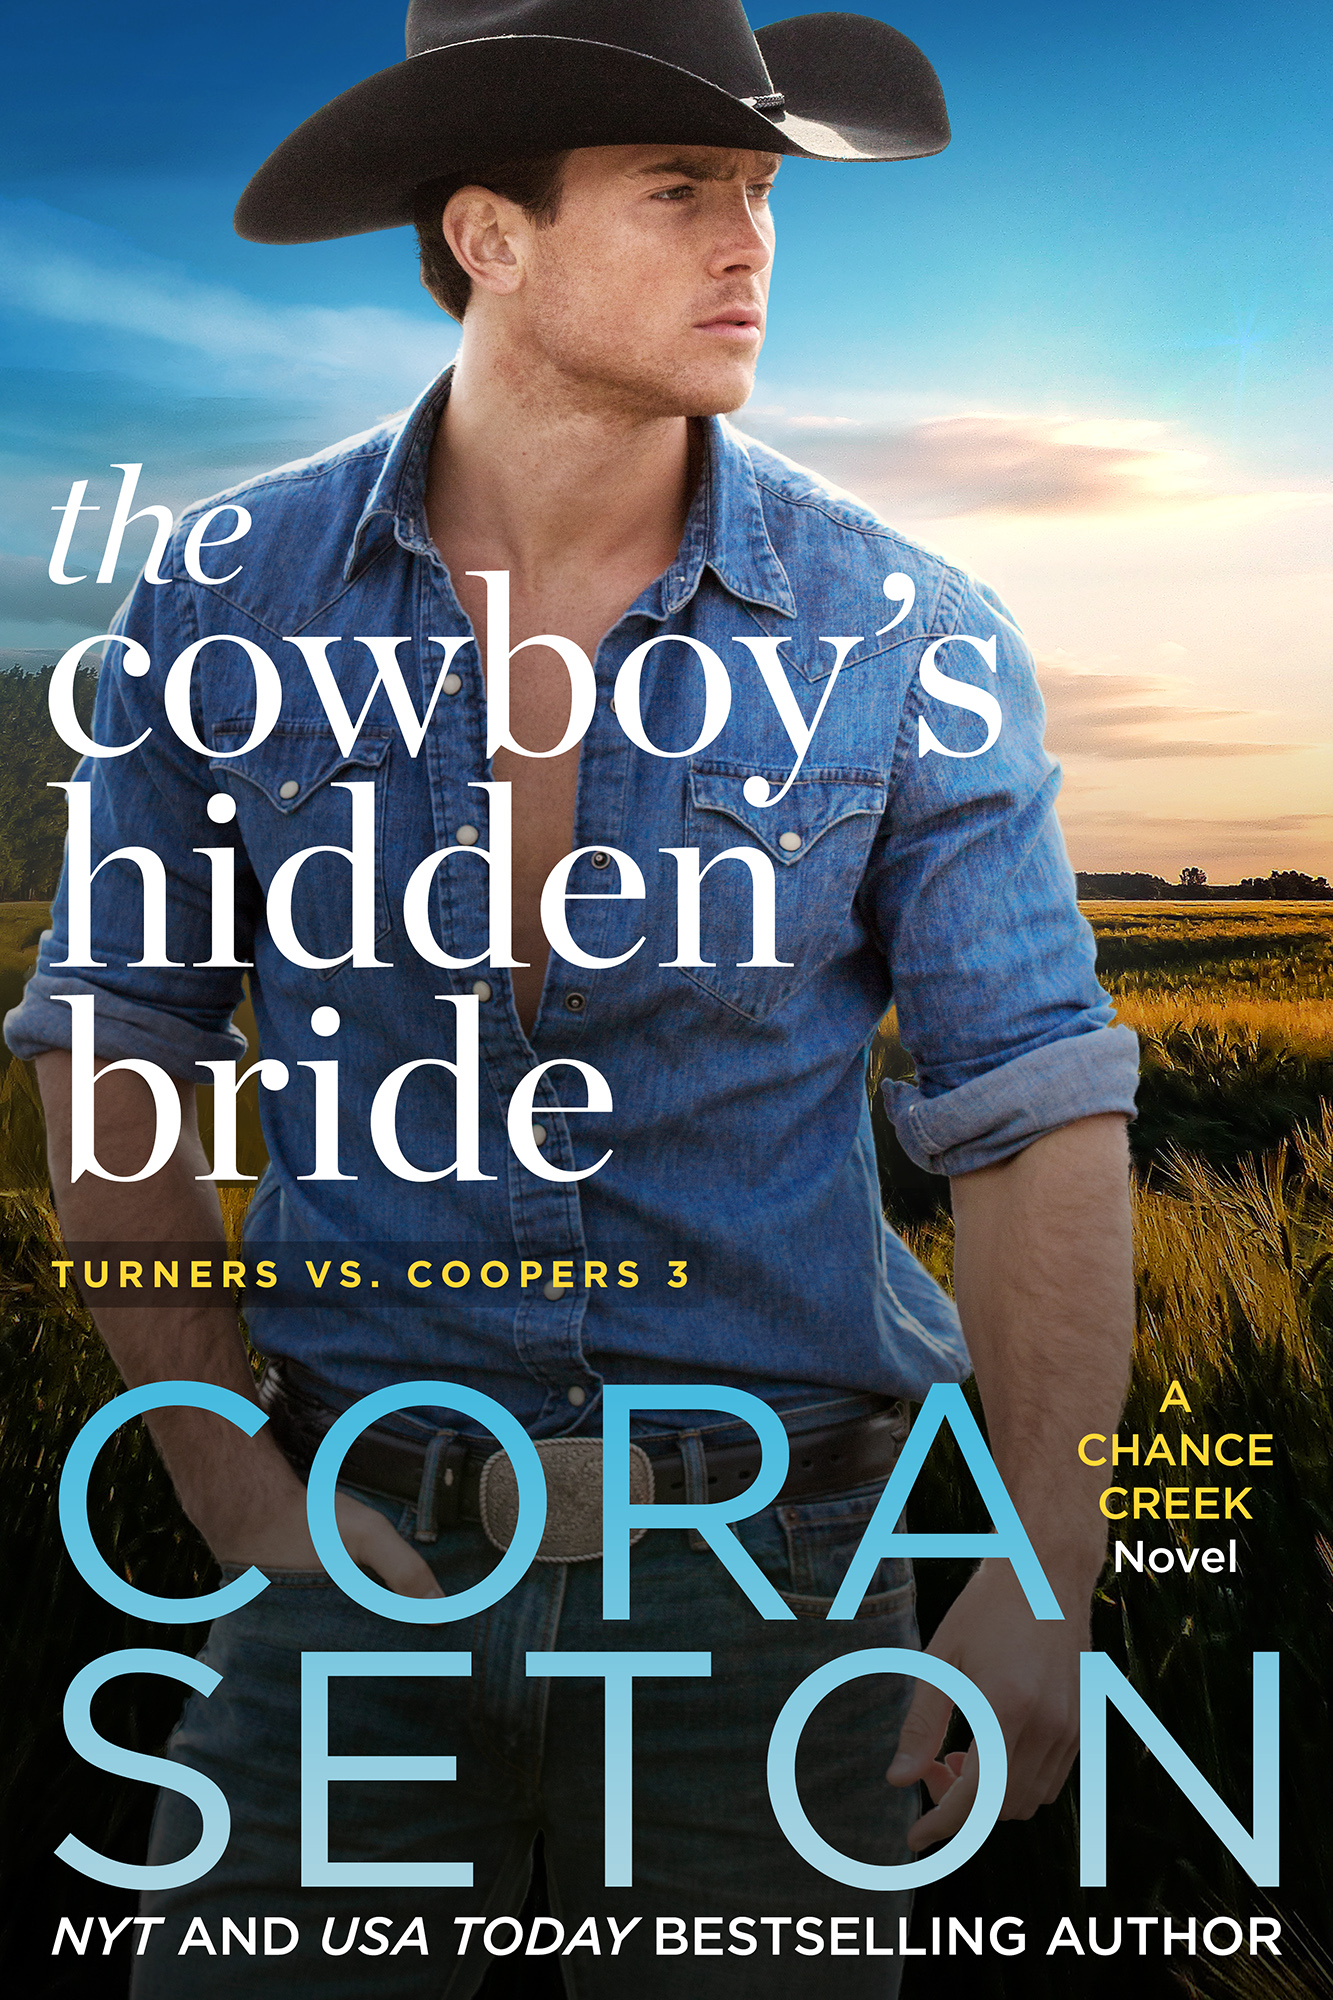 The Cowboy's Hidden Bride